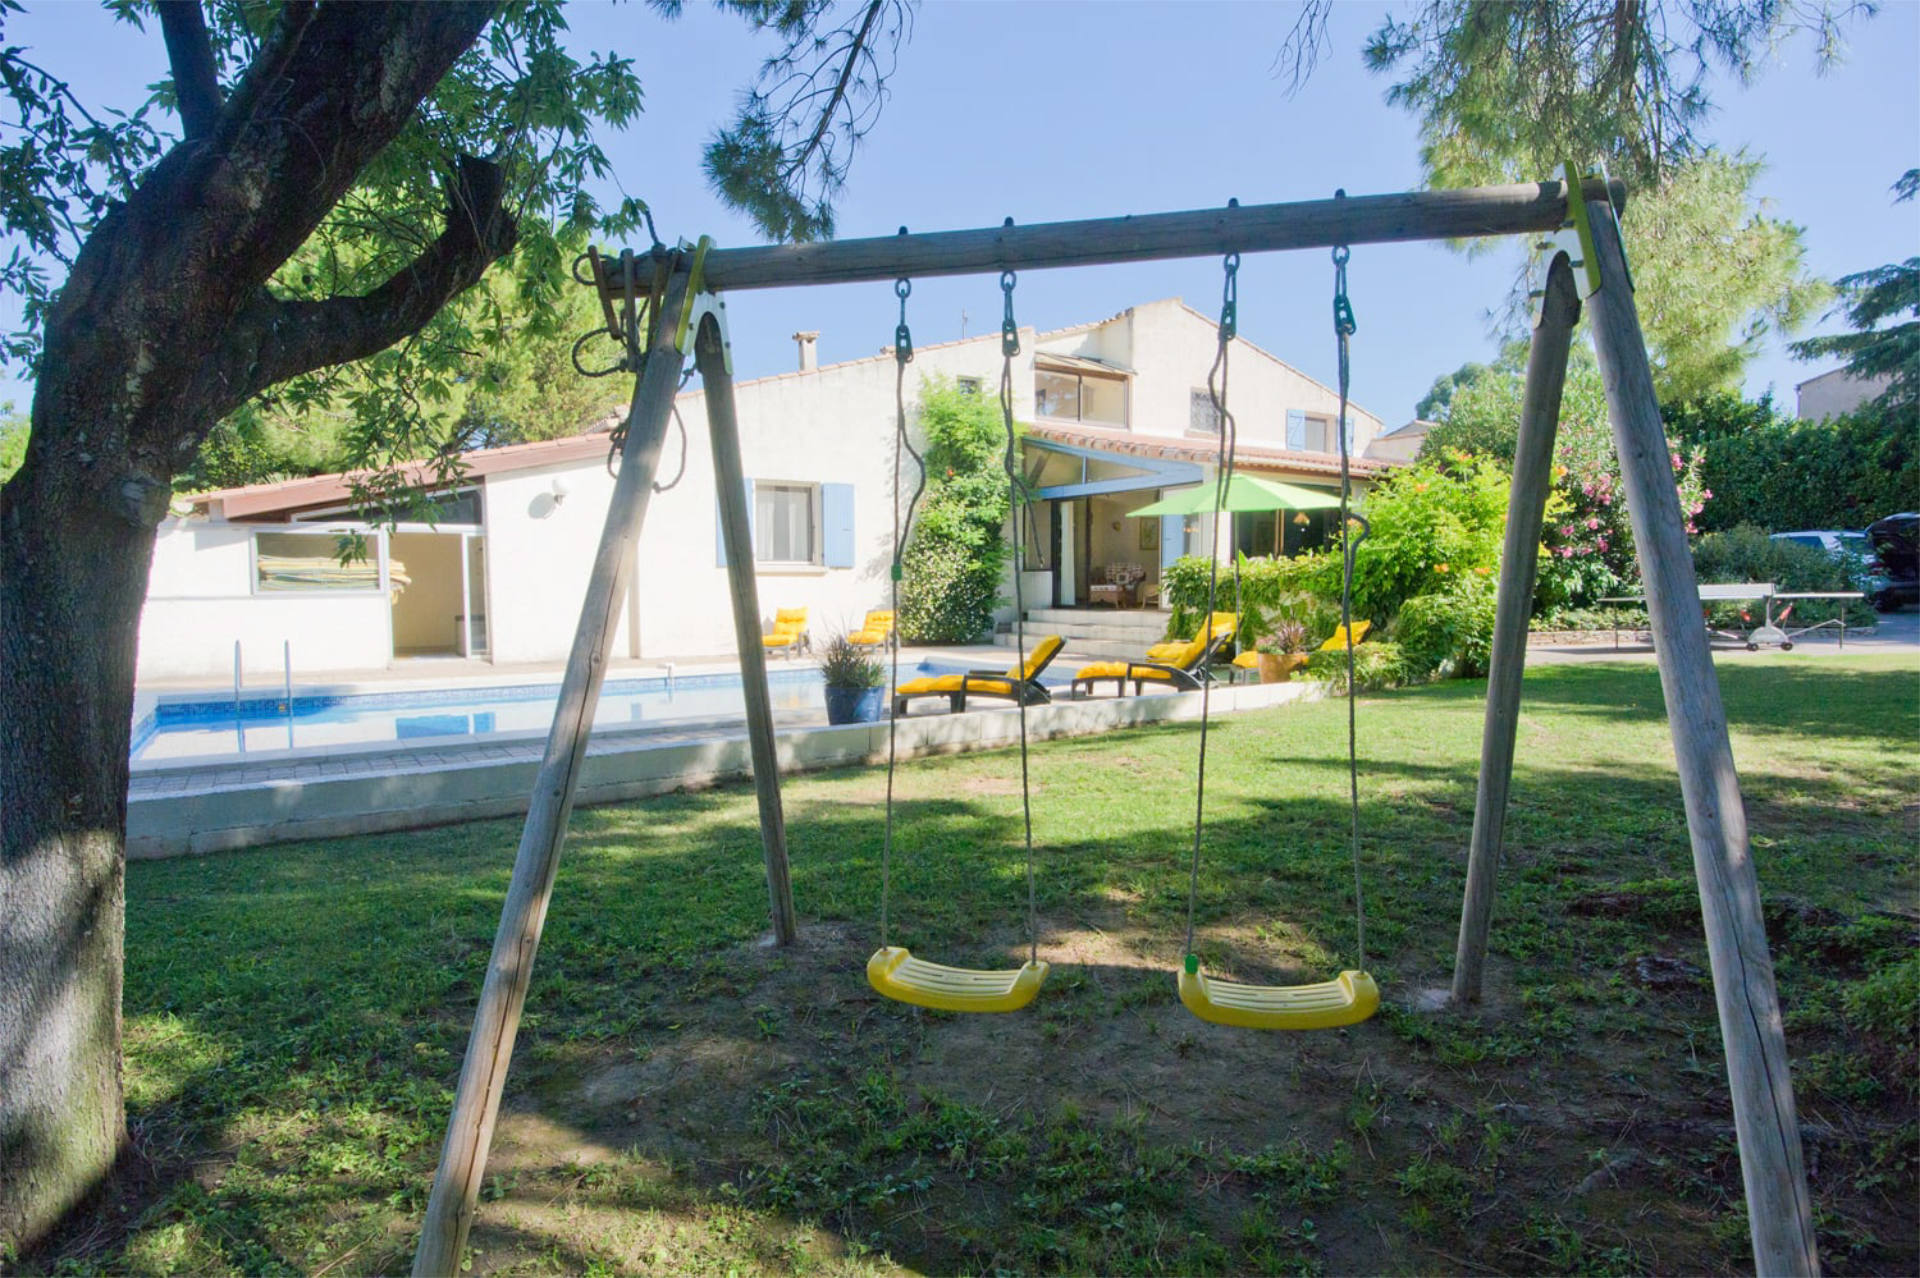 Outside swing set by the swimming pool.